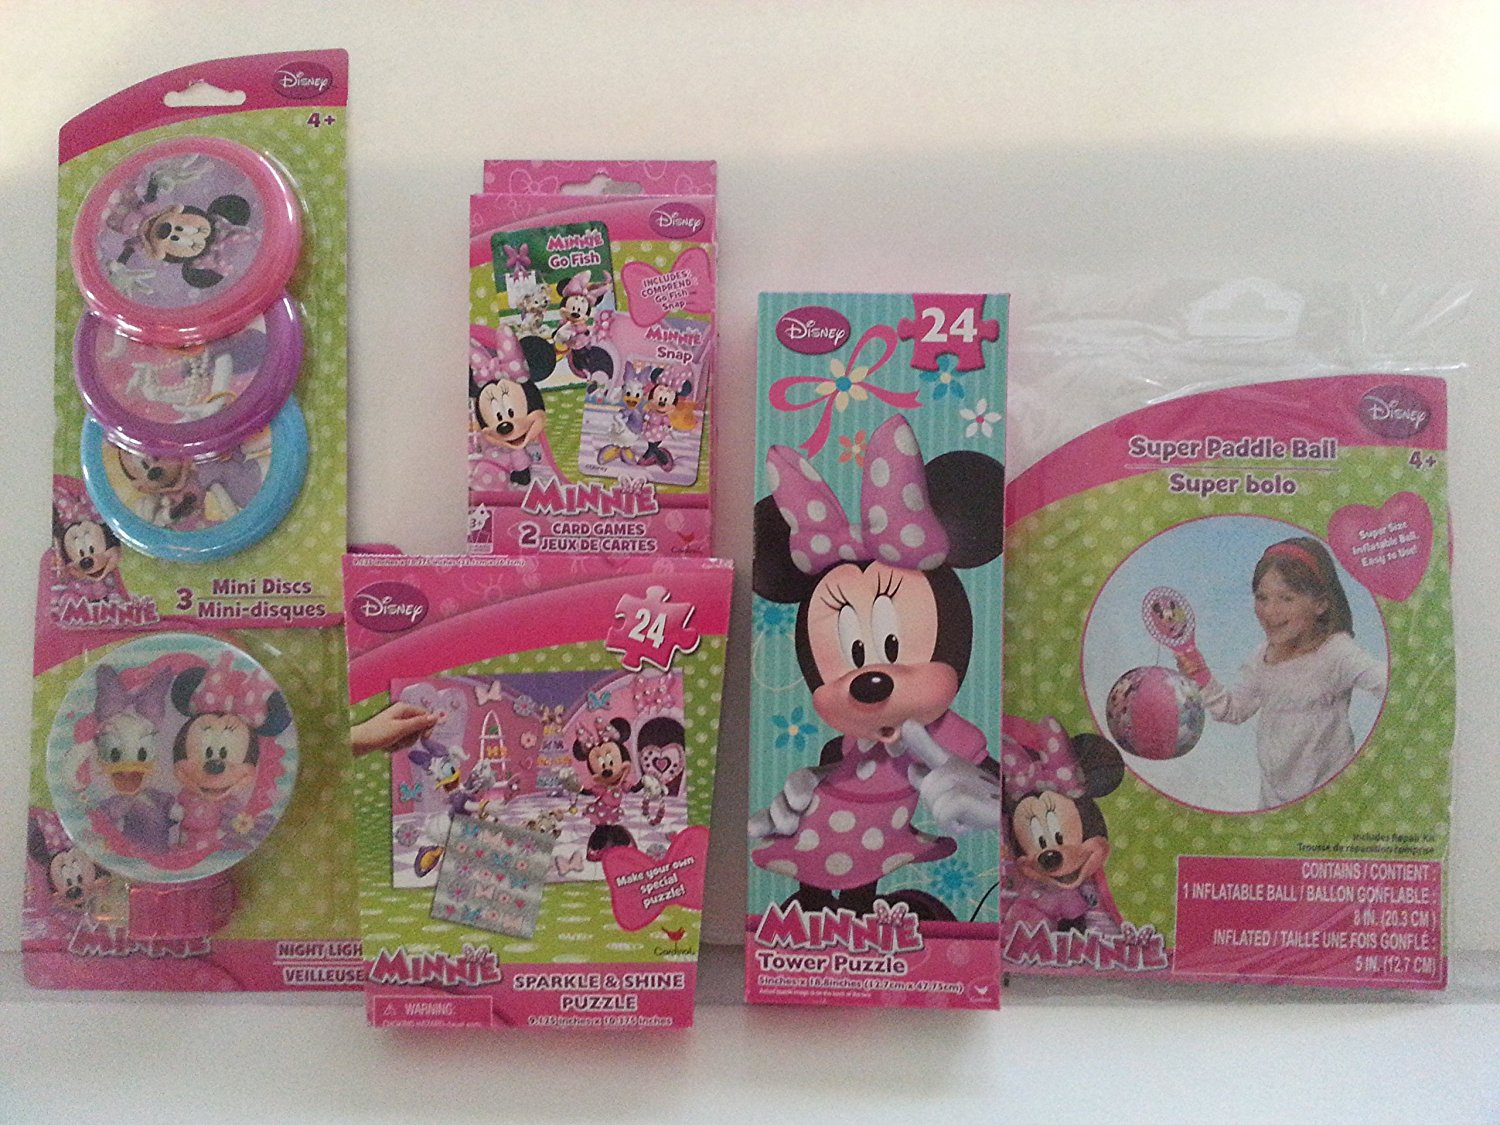 Disney Minnie Mouse Gift Set. Gift Bag Includes 1 (24) Pc Tower Puzzle, 1 Super Paddle Ball, 1 Sparkle Shine (24) Pc Puzzle, 1 Night Lights 1 Mini Disc (3) Pack Set, (2) Pack Card Game.